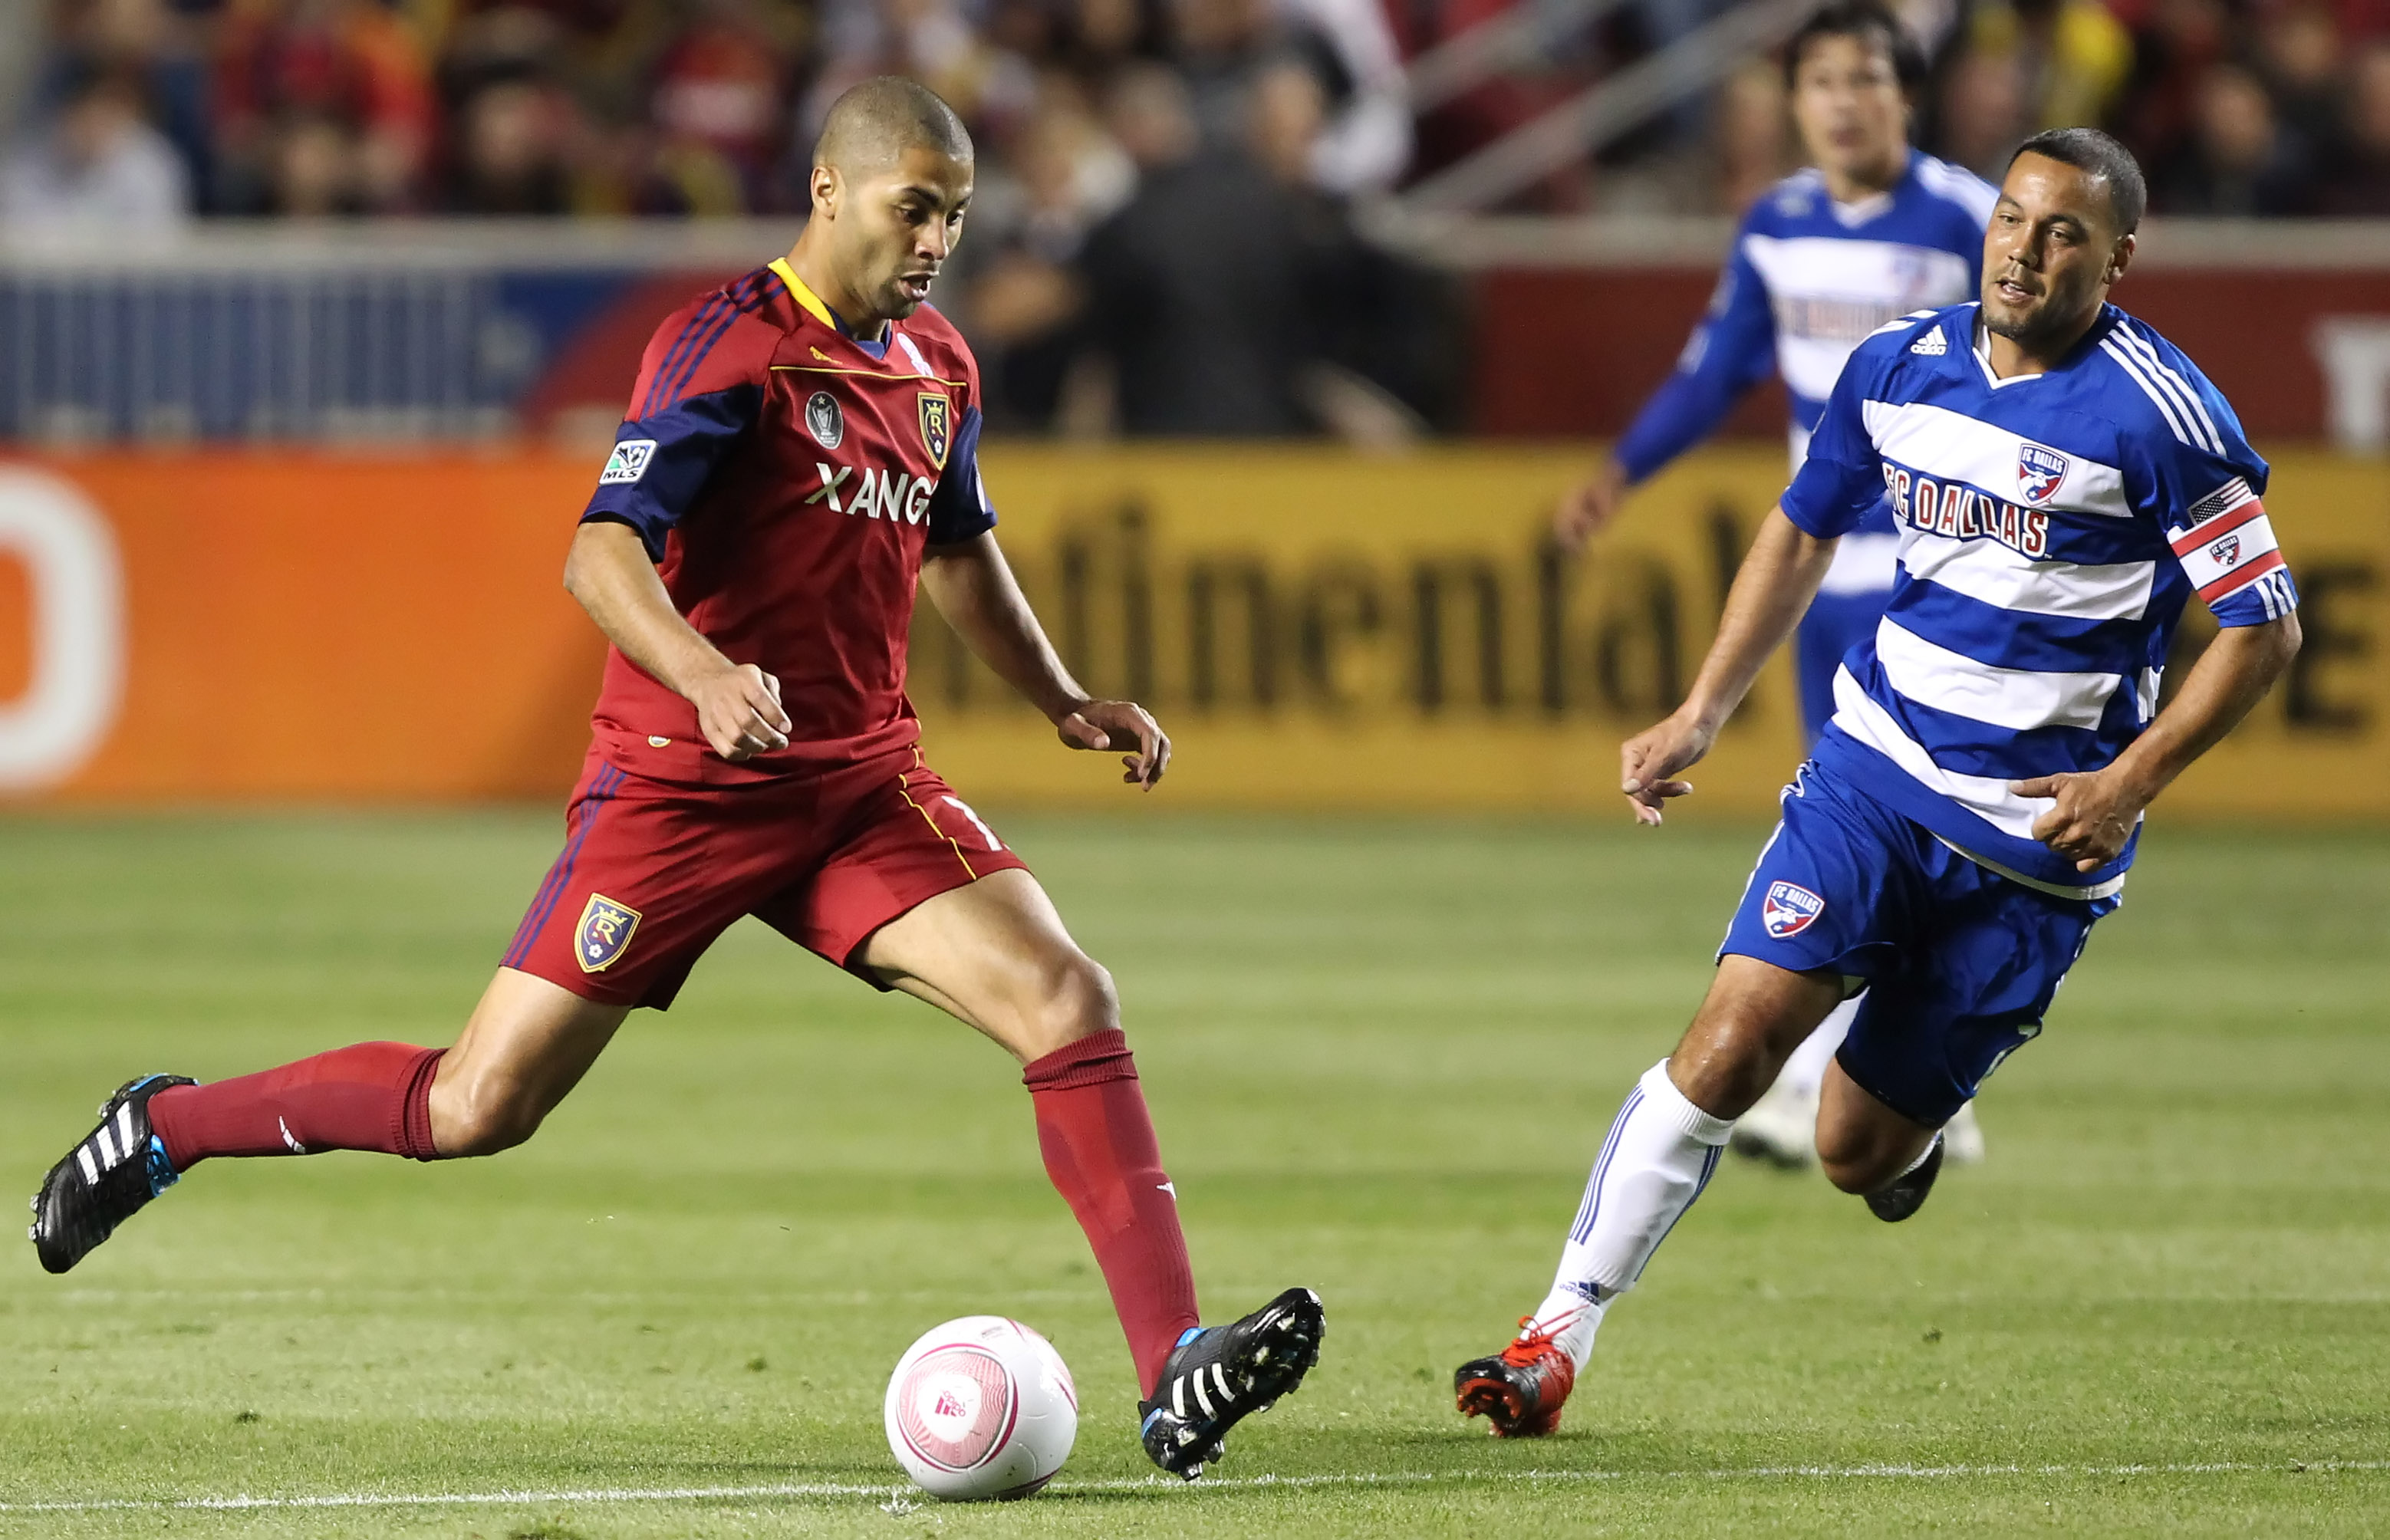 SANDY, UT - SEPTEMBER 16: Alvaro Saborio #15 of Real Salt Lake kicks the ball as Daniel Hernandez #2 of FC Dallas watches during the first half of an MLS soccer game September 16, 2010 at Rio Tinto Stadium in Sandy, Utah. (Photo by George Frey/Getty Image